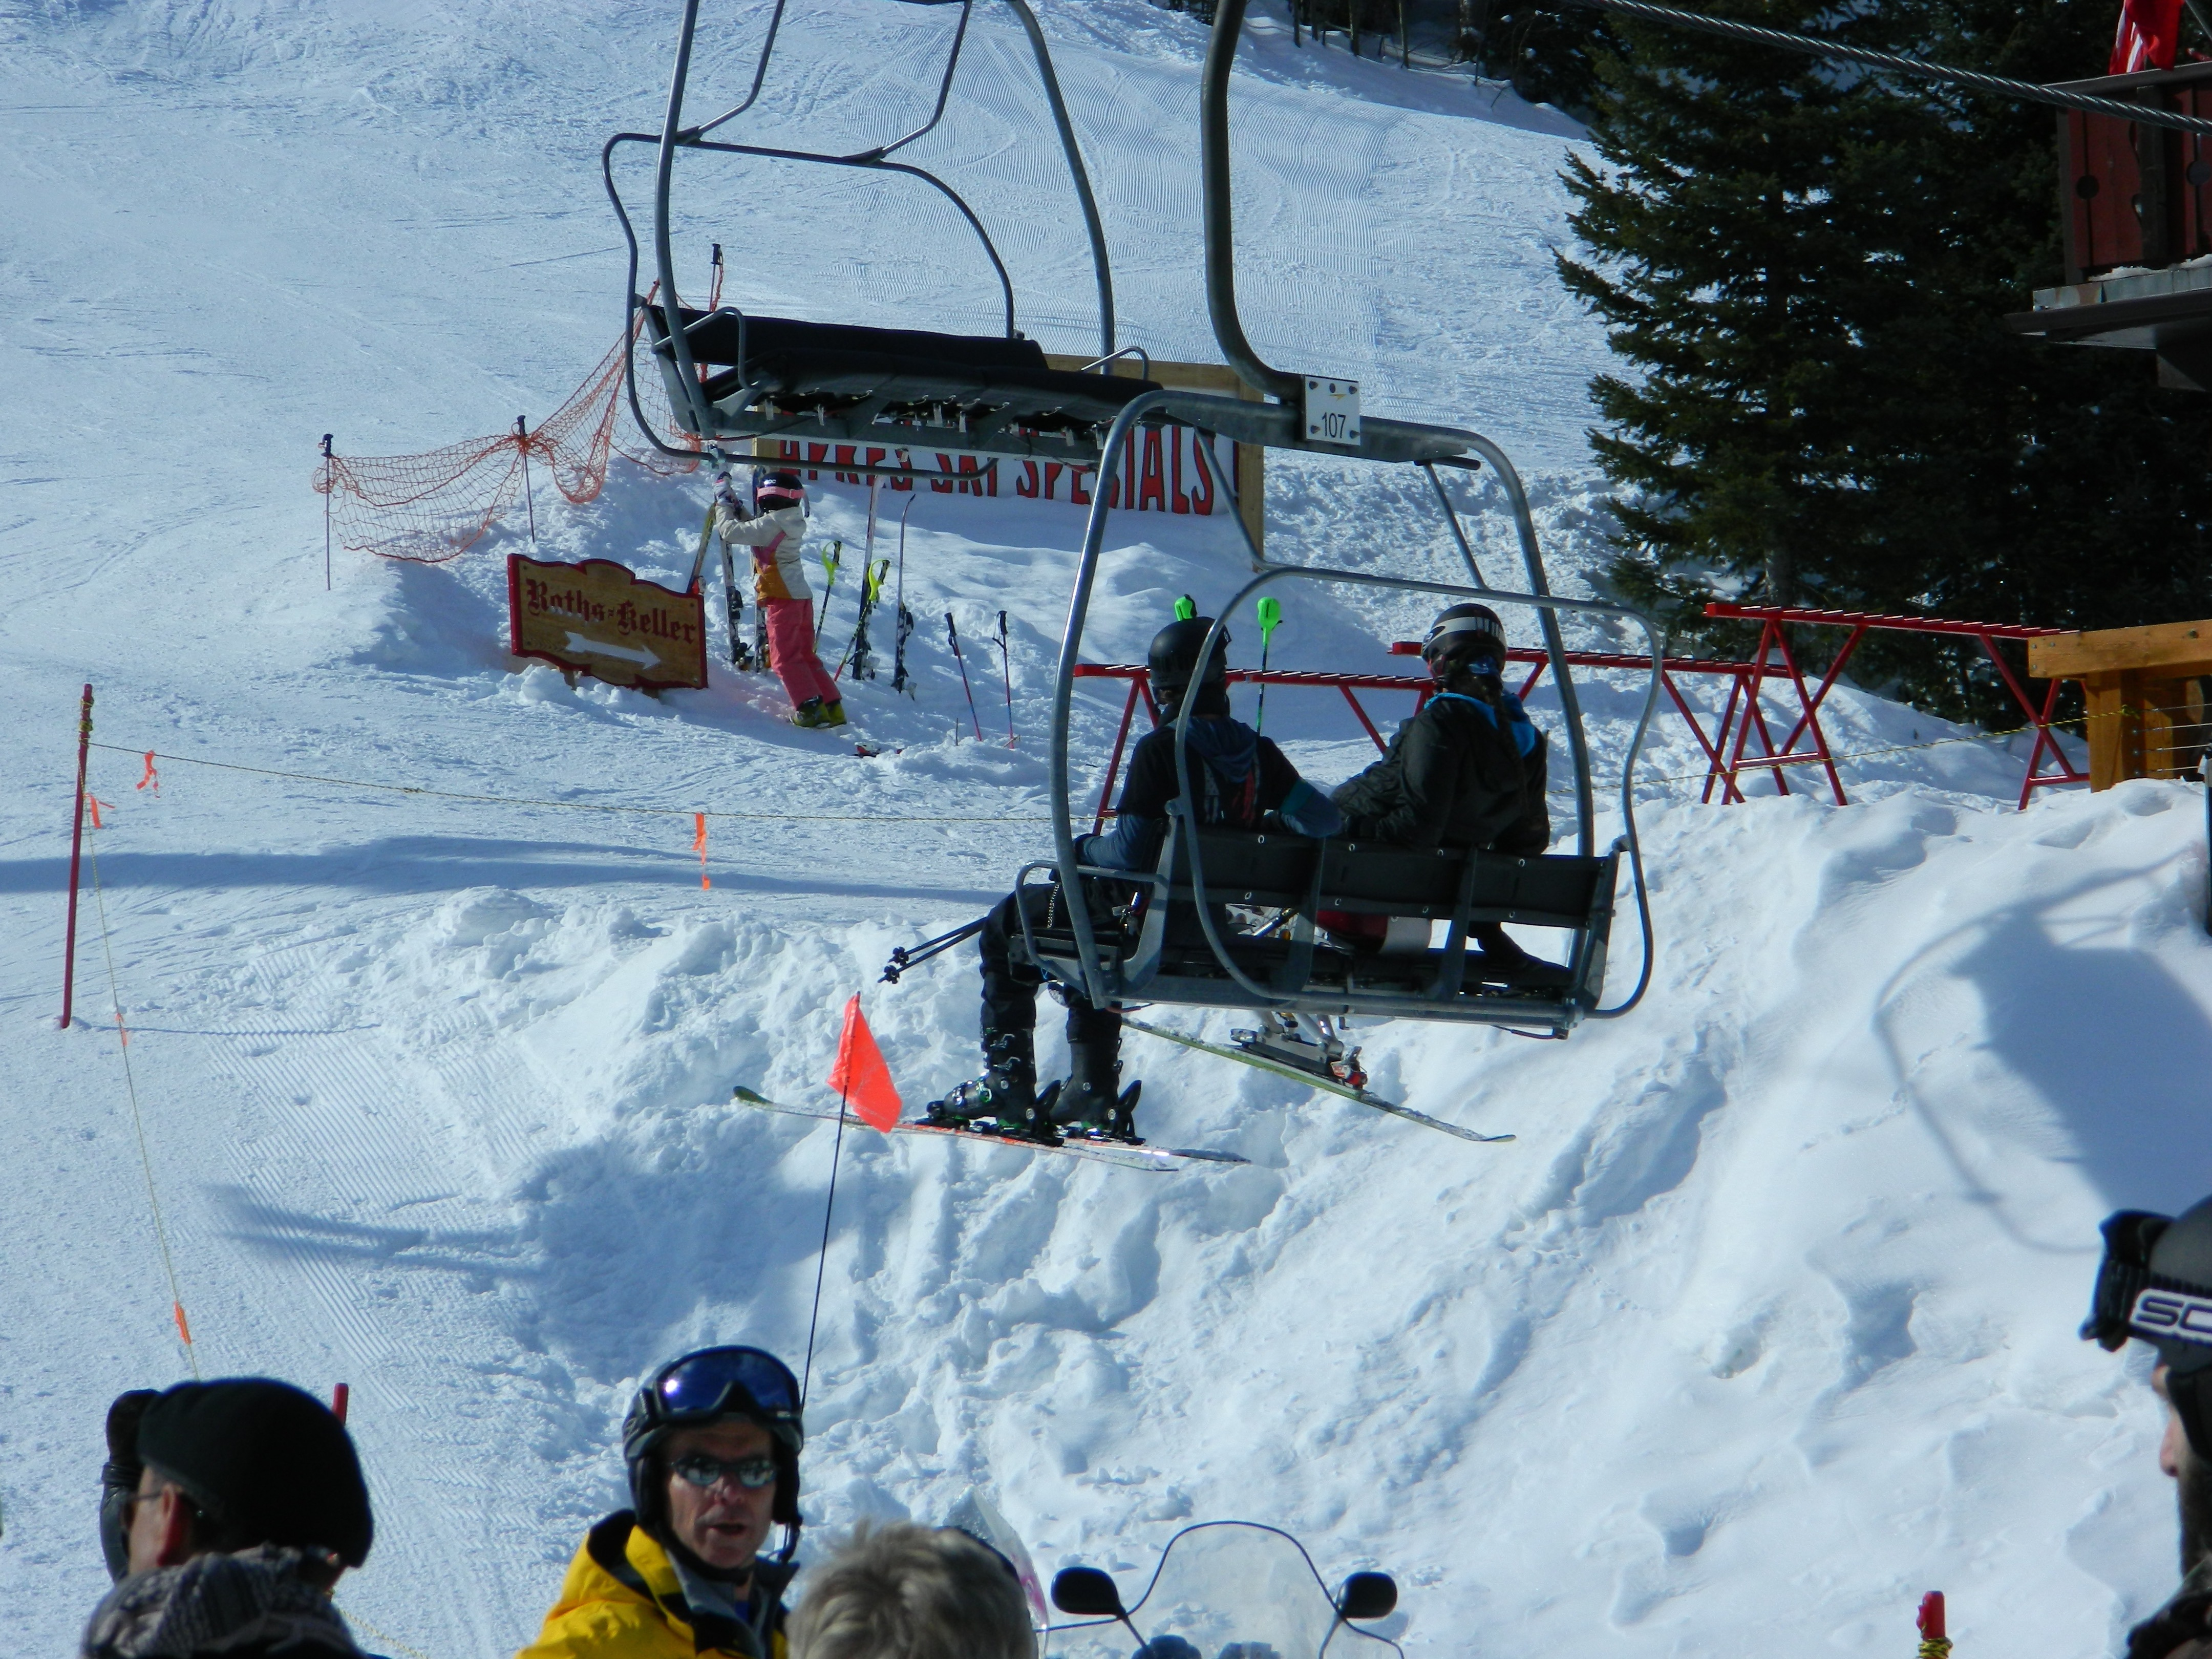 A disabled skier in a ski chair and companion ride a chairlift near the base of Taos Ski Valley on a sunny day.